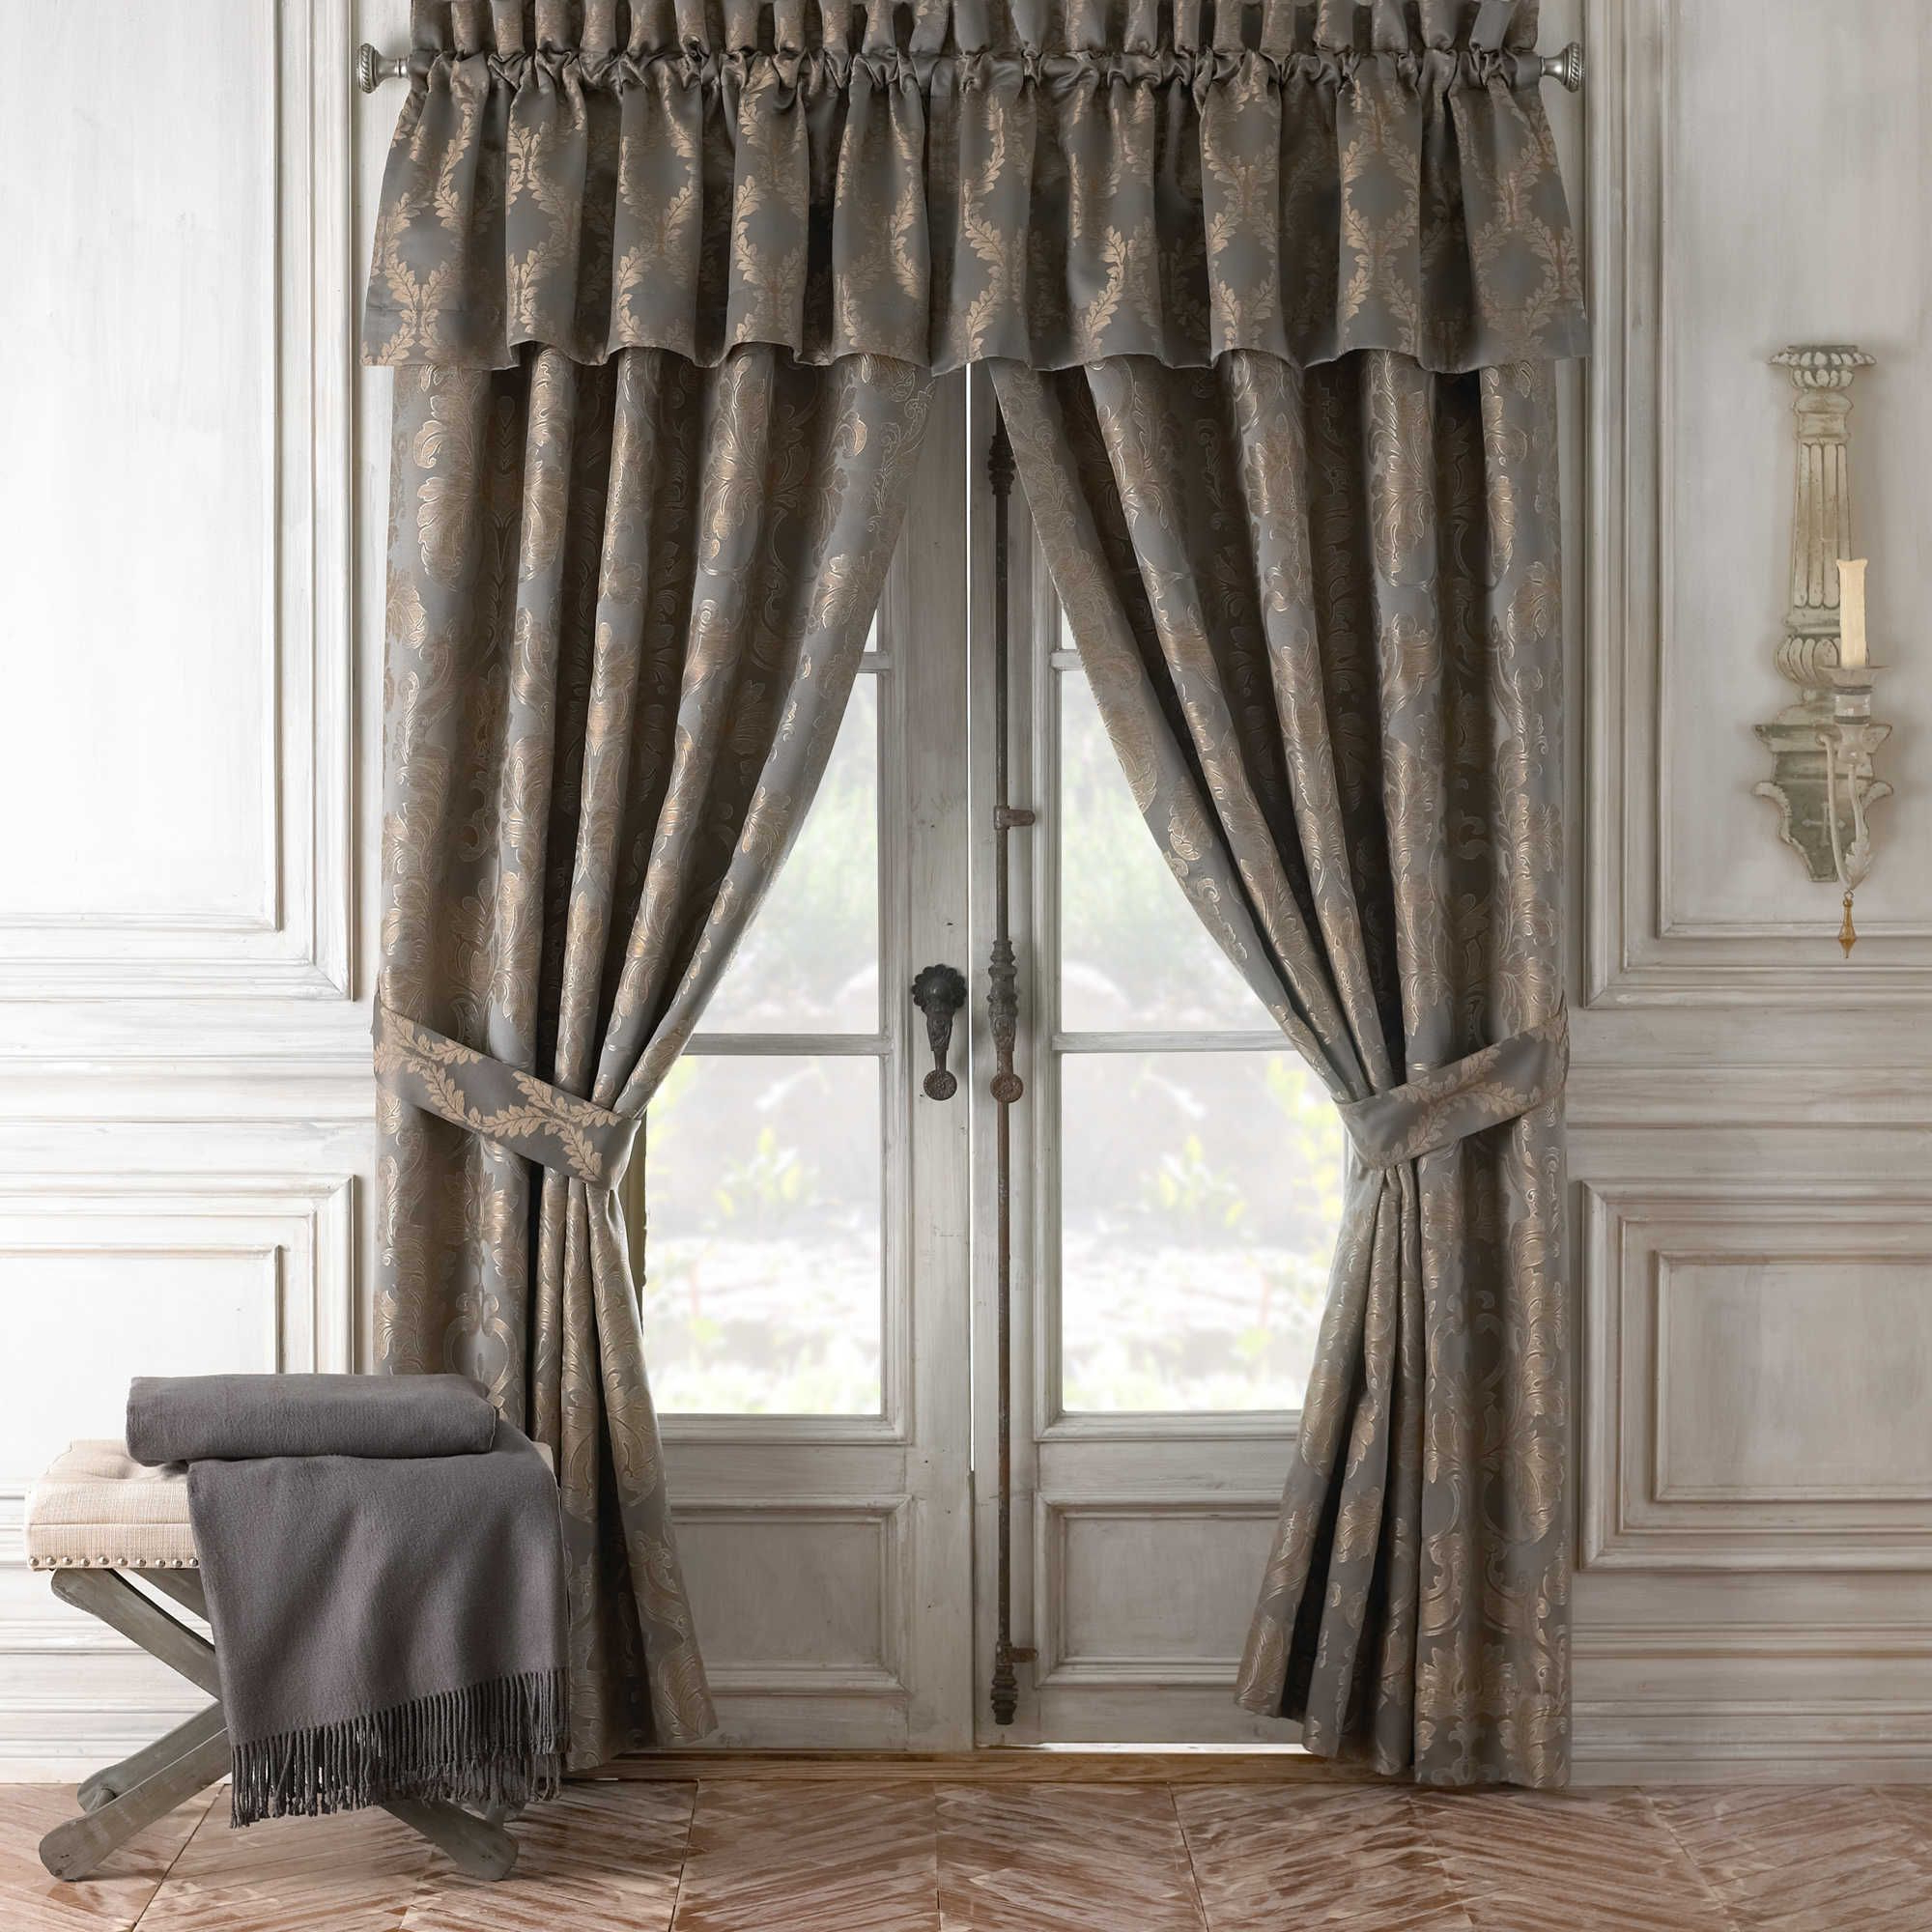 Stuff For New With Regard To Elrene Mia Jacquard Blackout Curtain Panels (View 15 of 20)